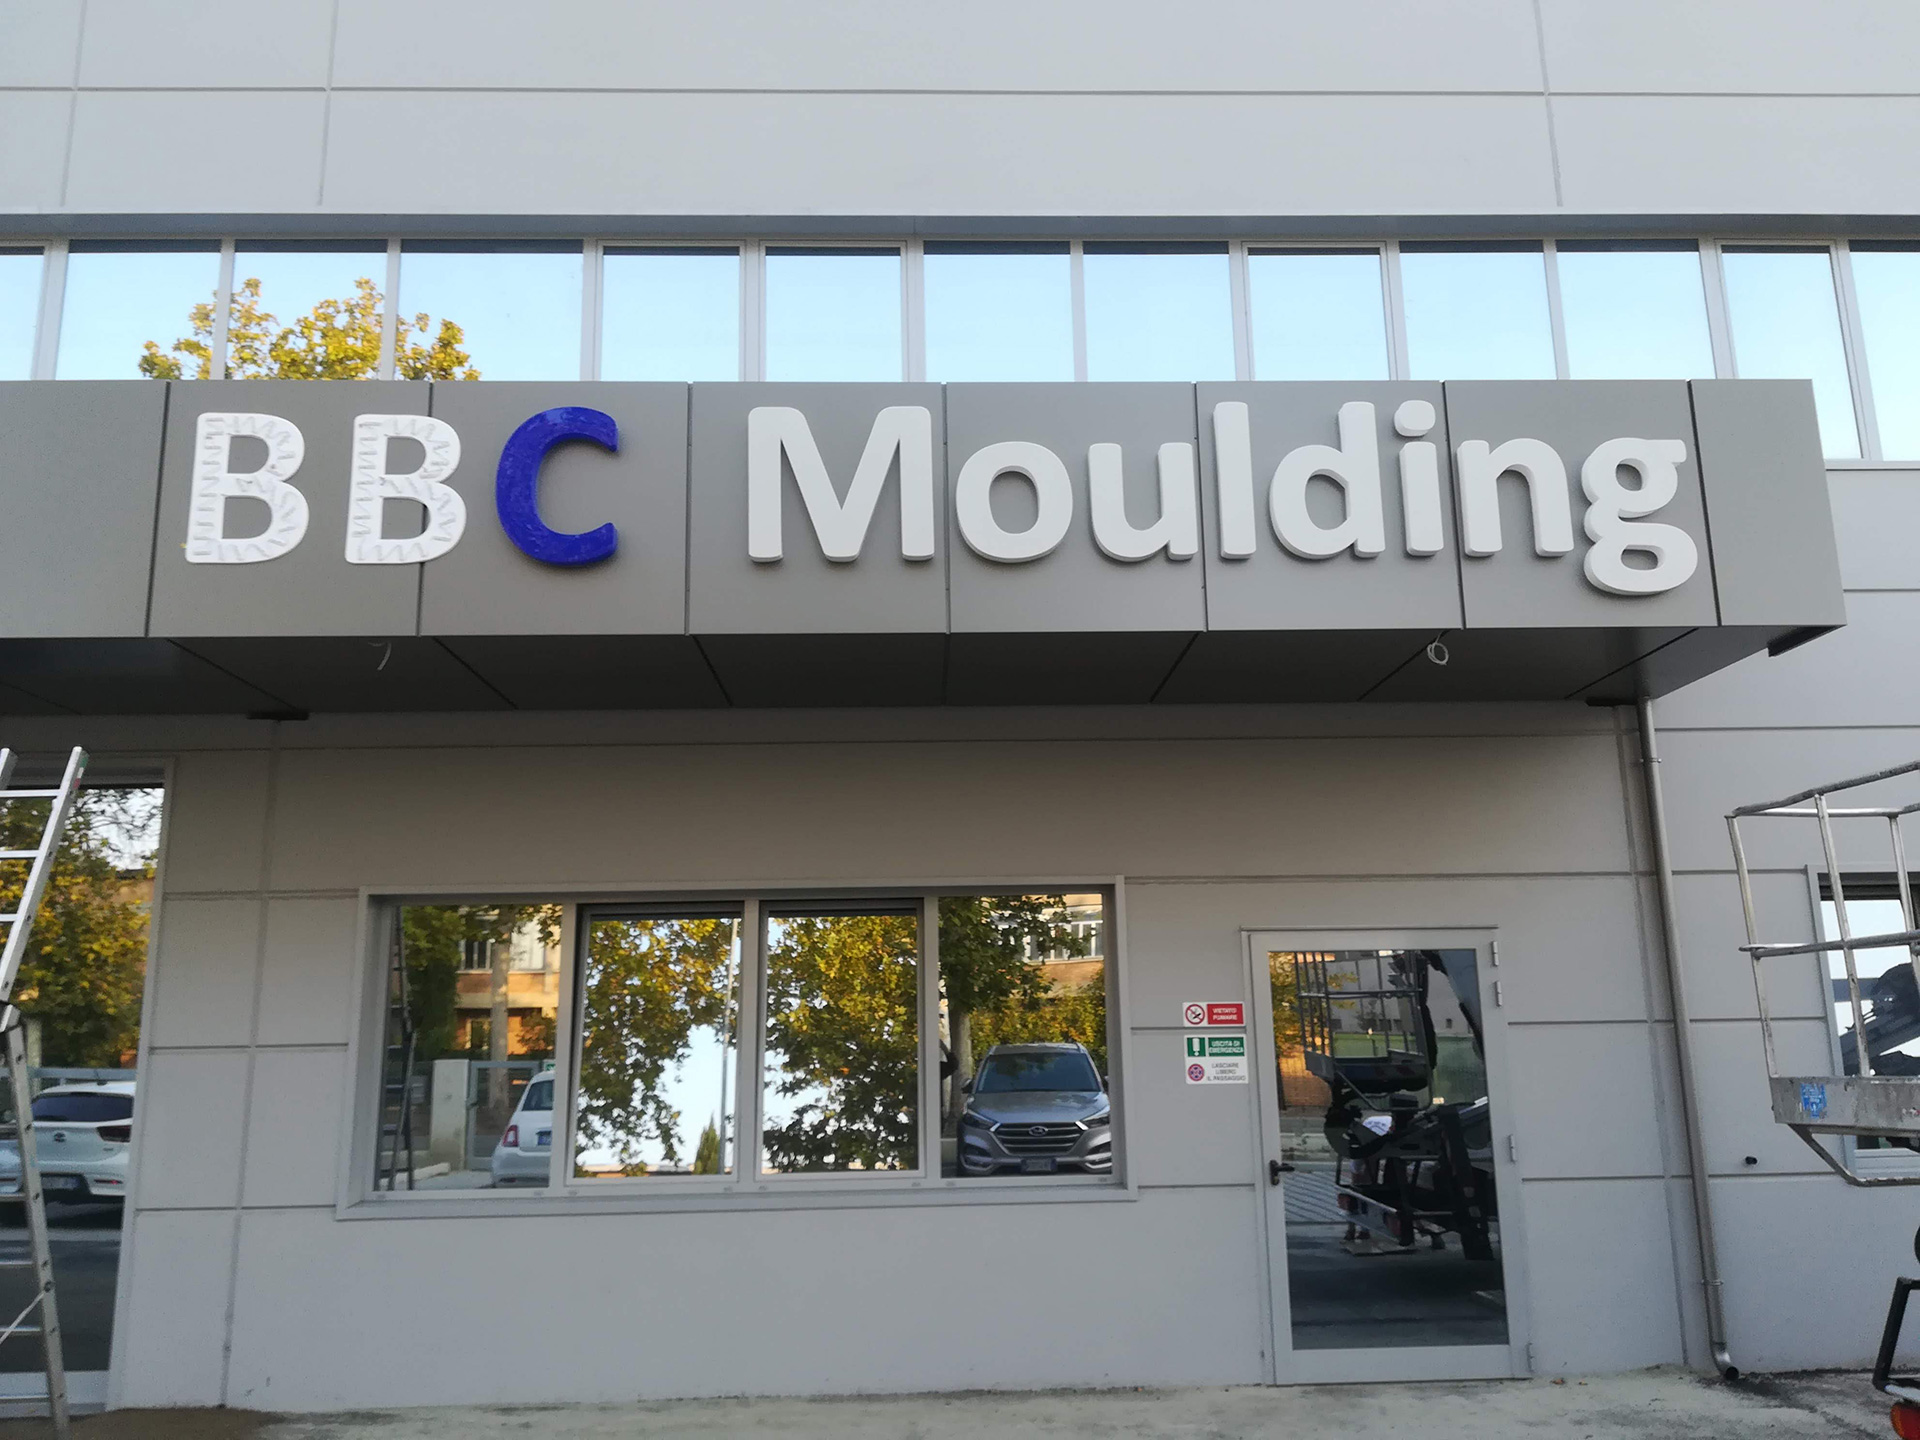 Insegne Led Bbc Moulding Lettere In Pvc Sericart2